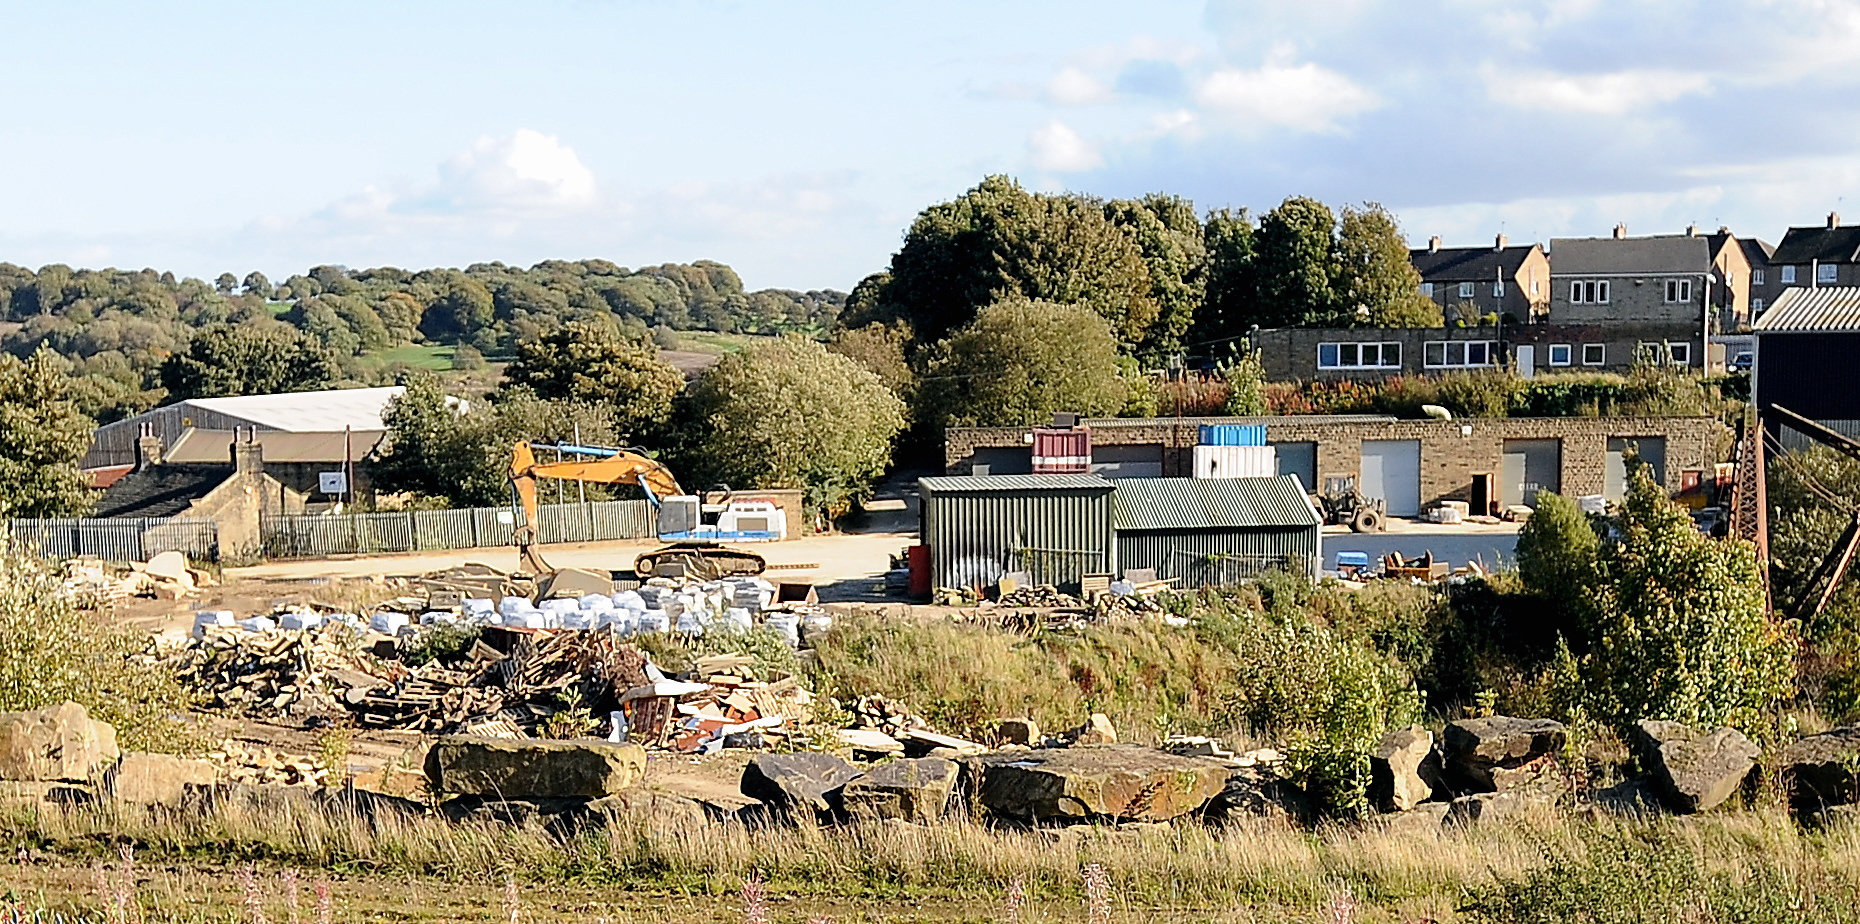 The Fagley Quarry site